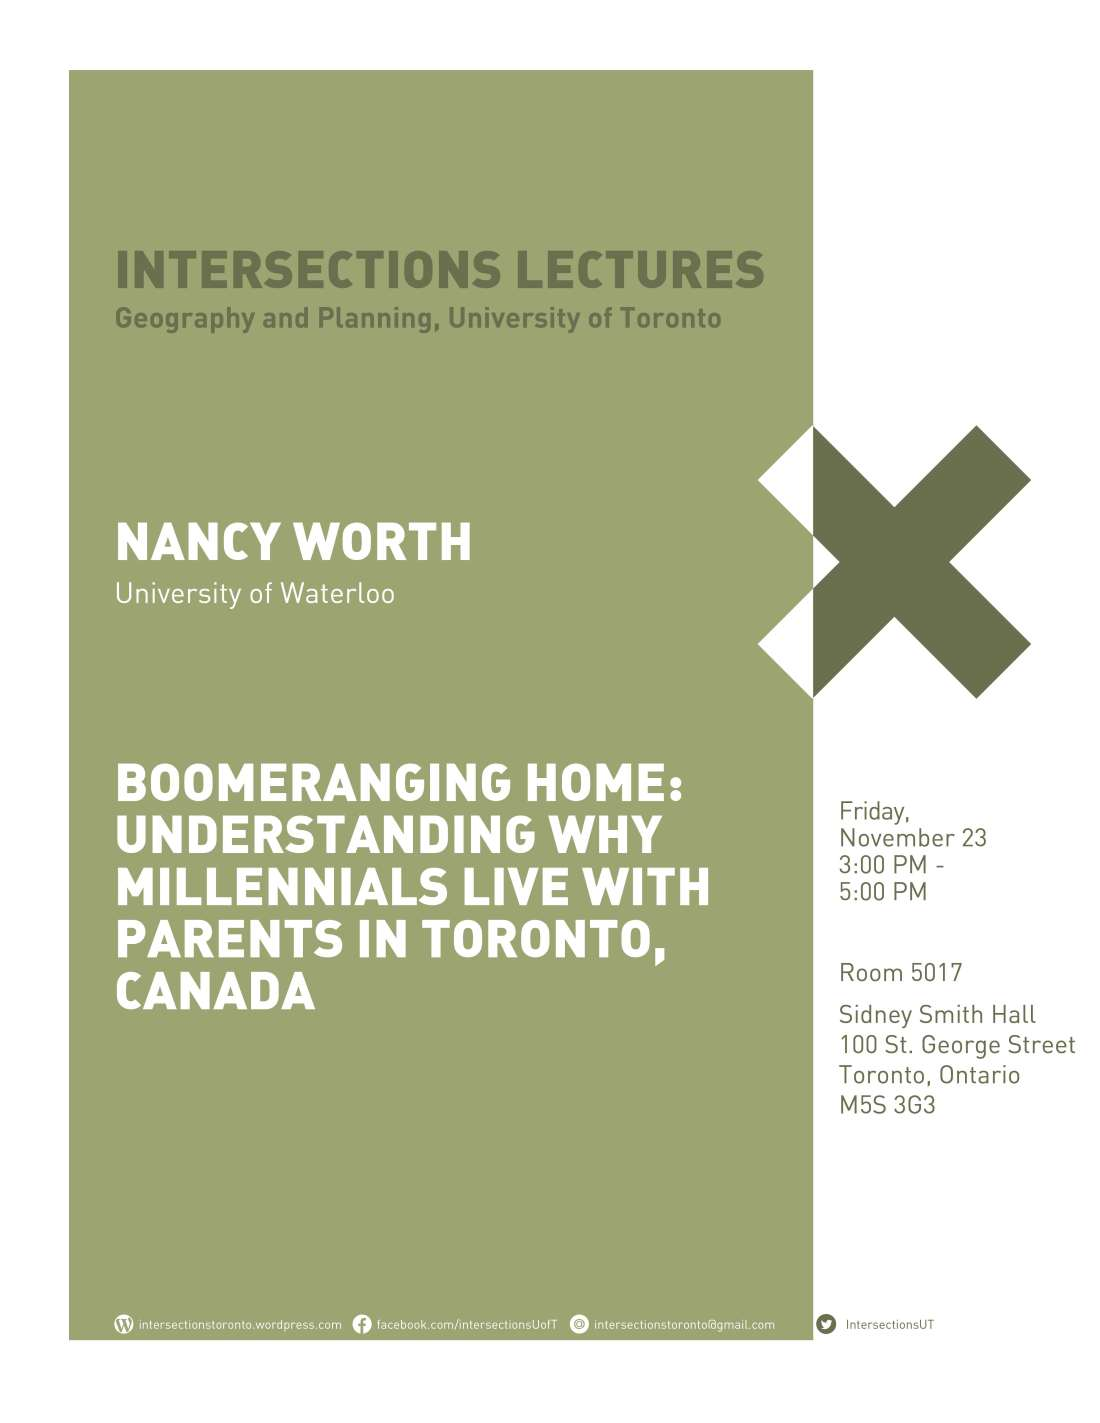 Intersections 2018-19 Posters_Nancy Worth